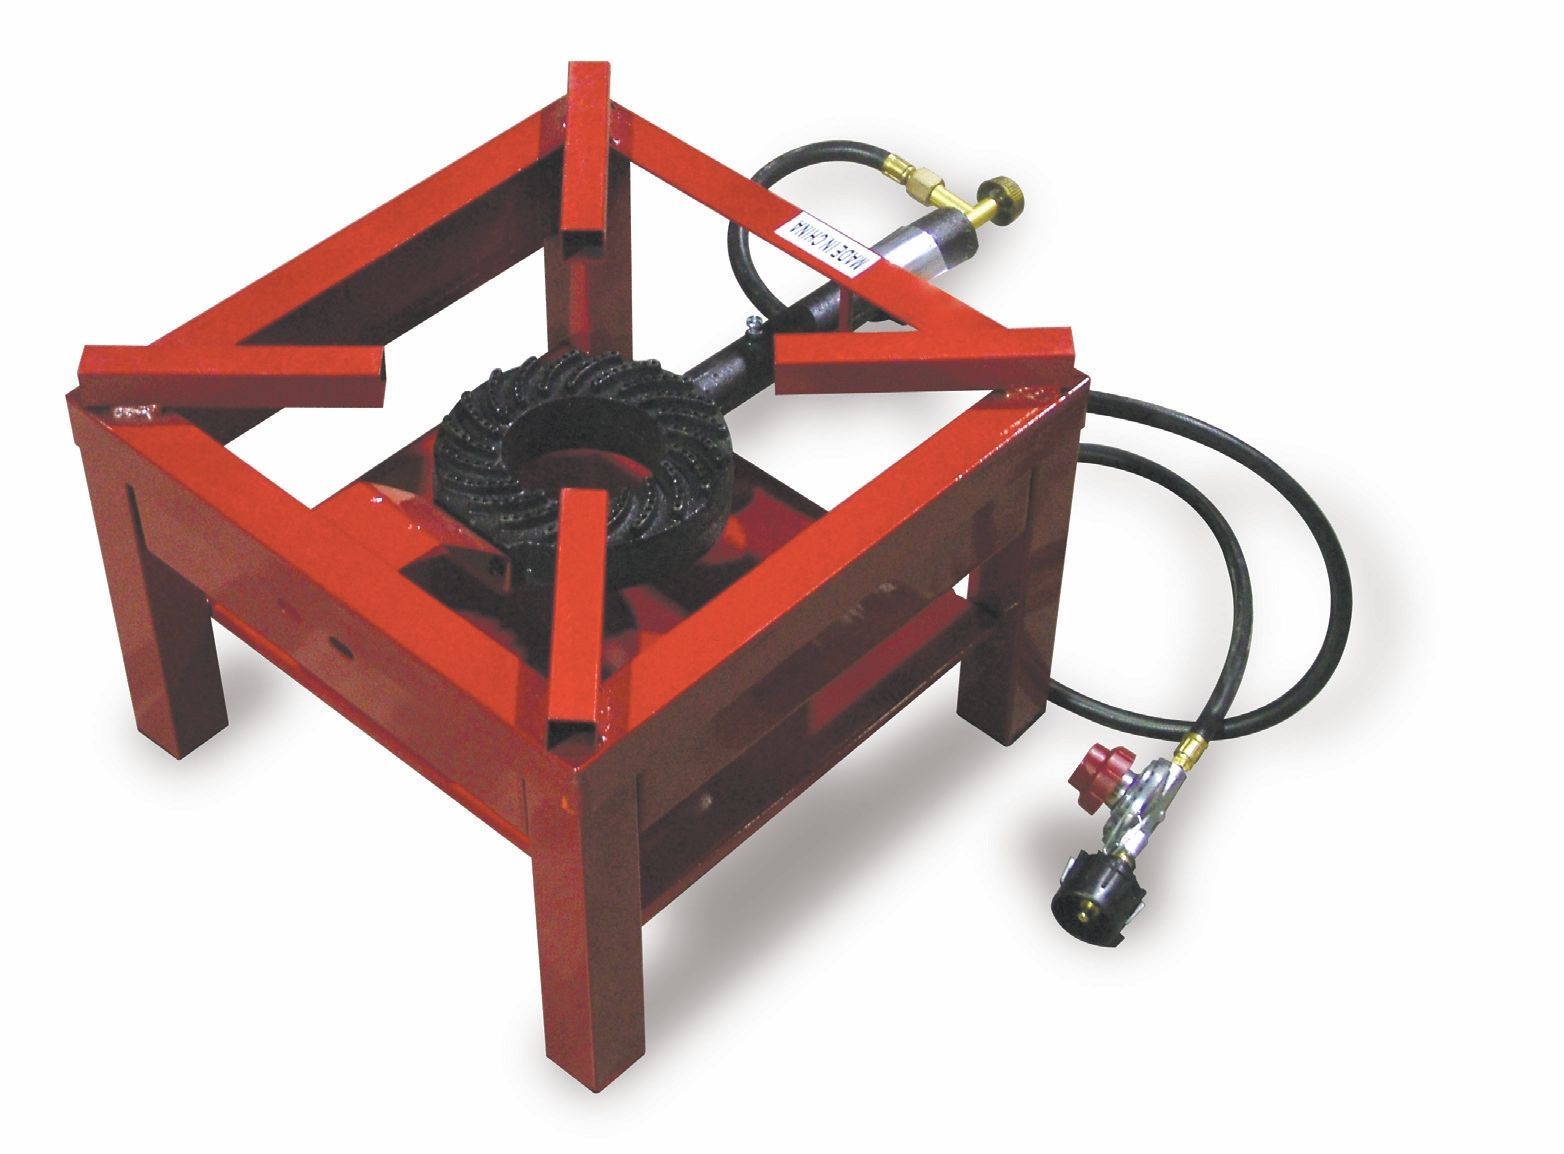 Omcan Fma Red Outdoor Cast Iron Propane Burner Model 23633